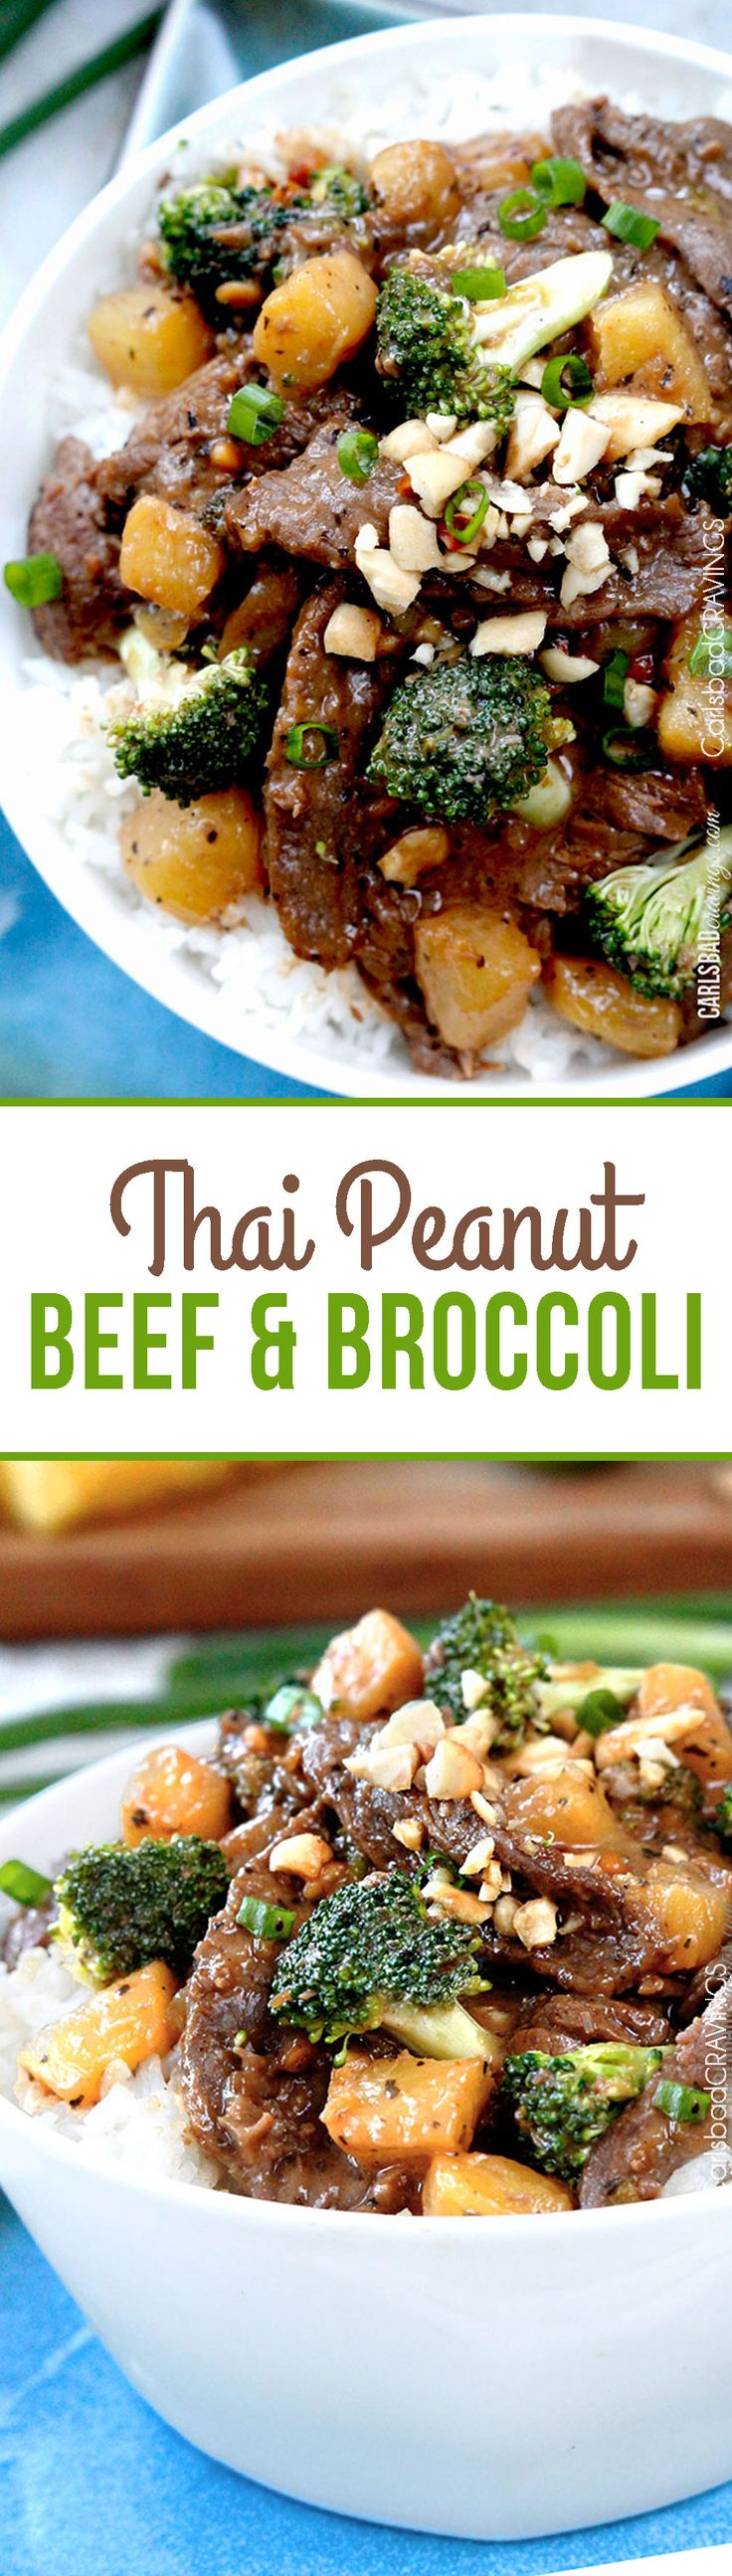 If you like Beef and Broccoli and Thai Peanut Sauce - you are going to LOVE this explosion of flavor!. #thairecipes #beefandbroccoli #broccolibeef #peanutsauce